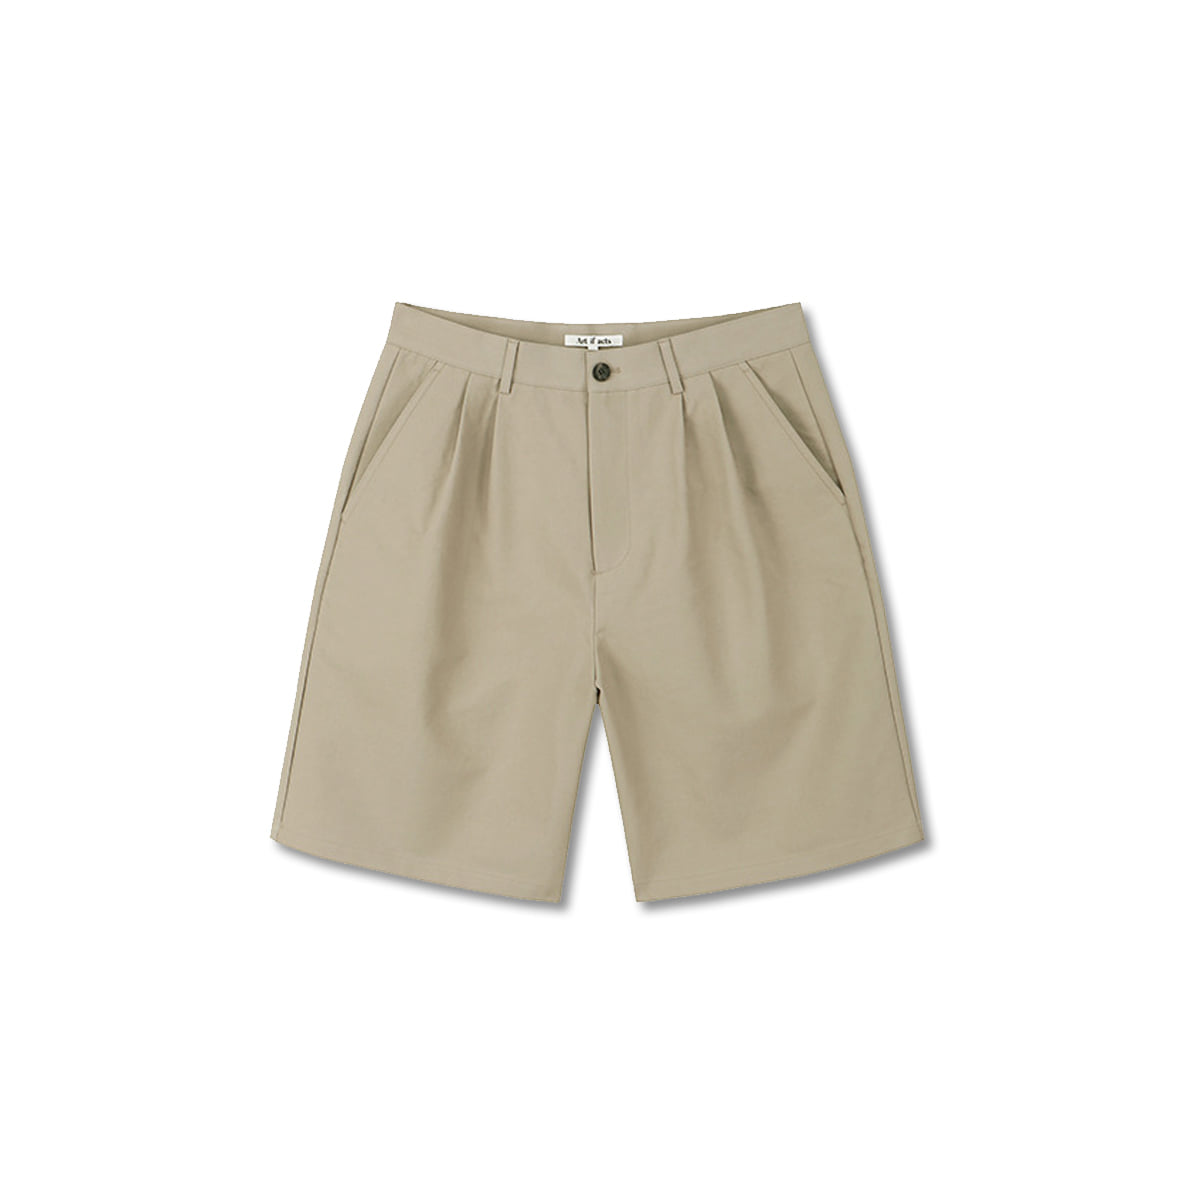 [ART IF ACTS] TWO TUCK BERMUDA SHORTS 'BEIGE'